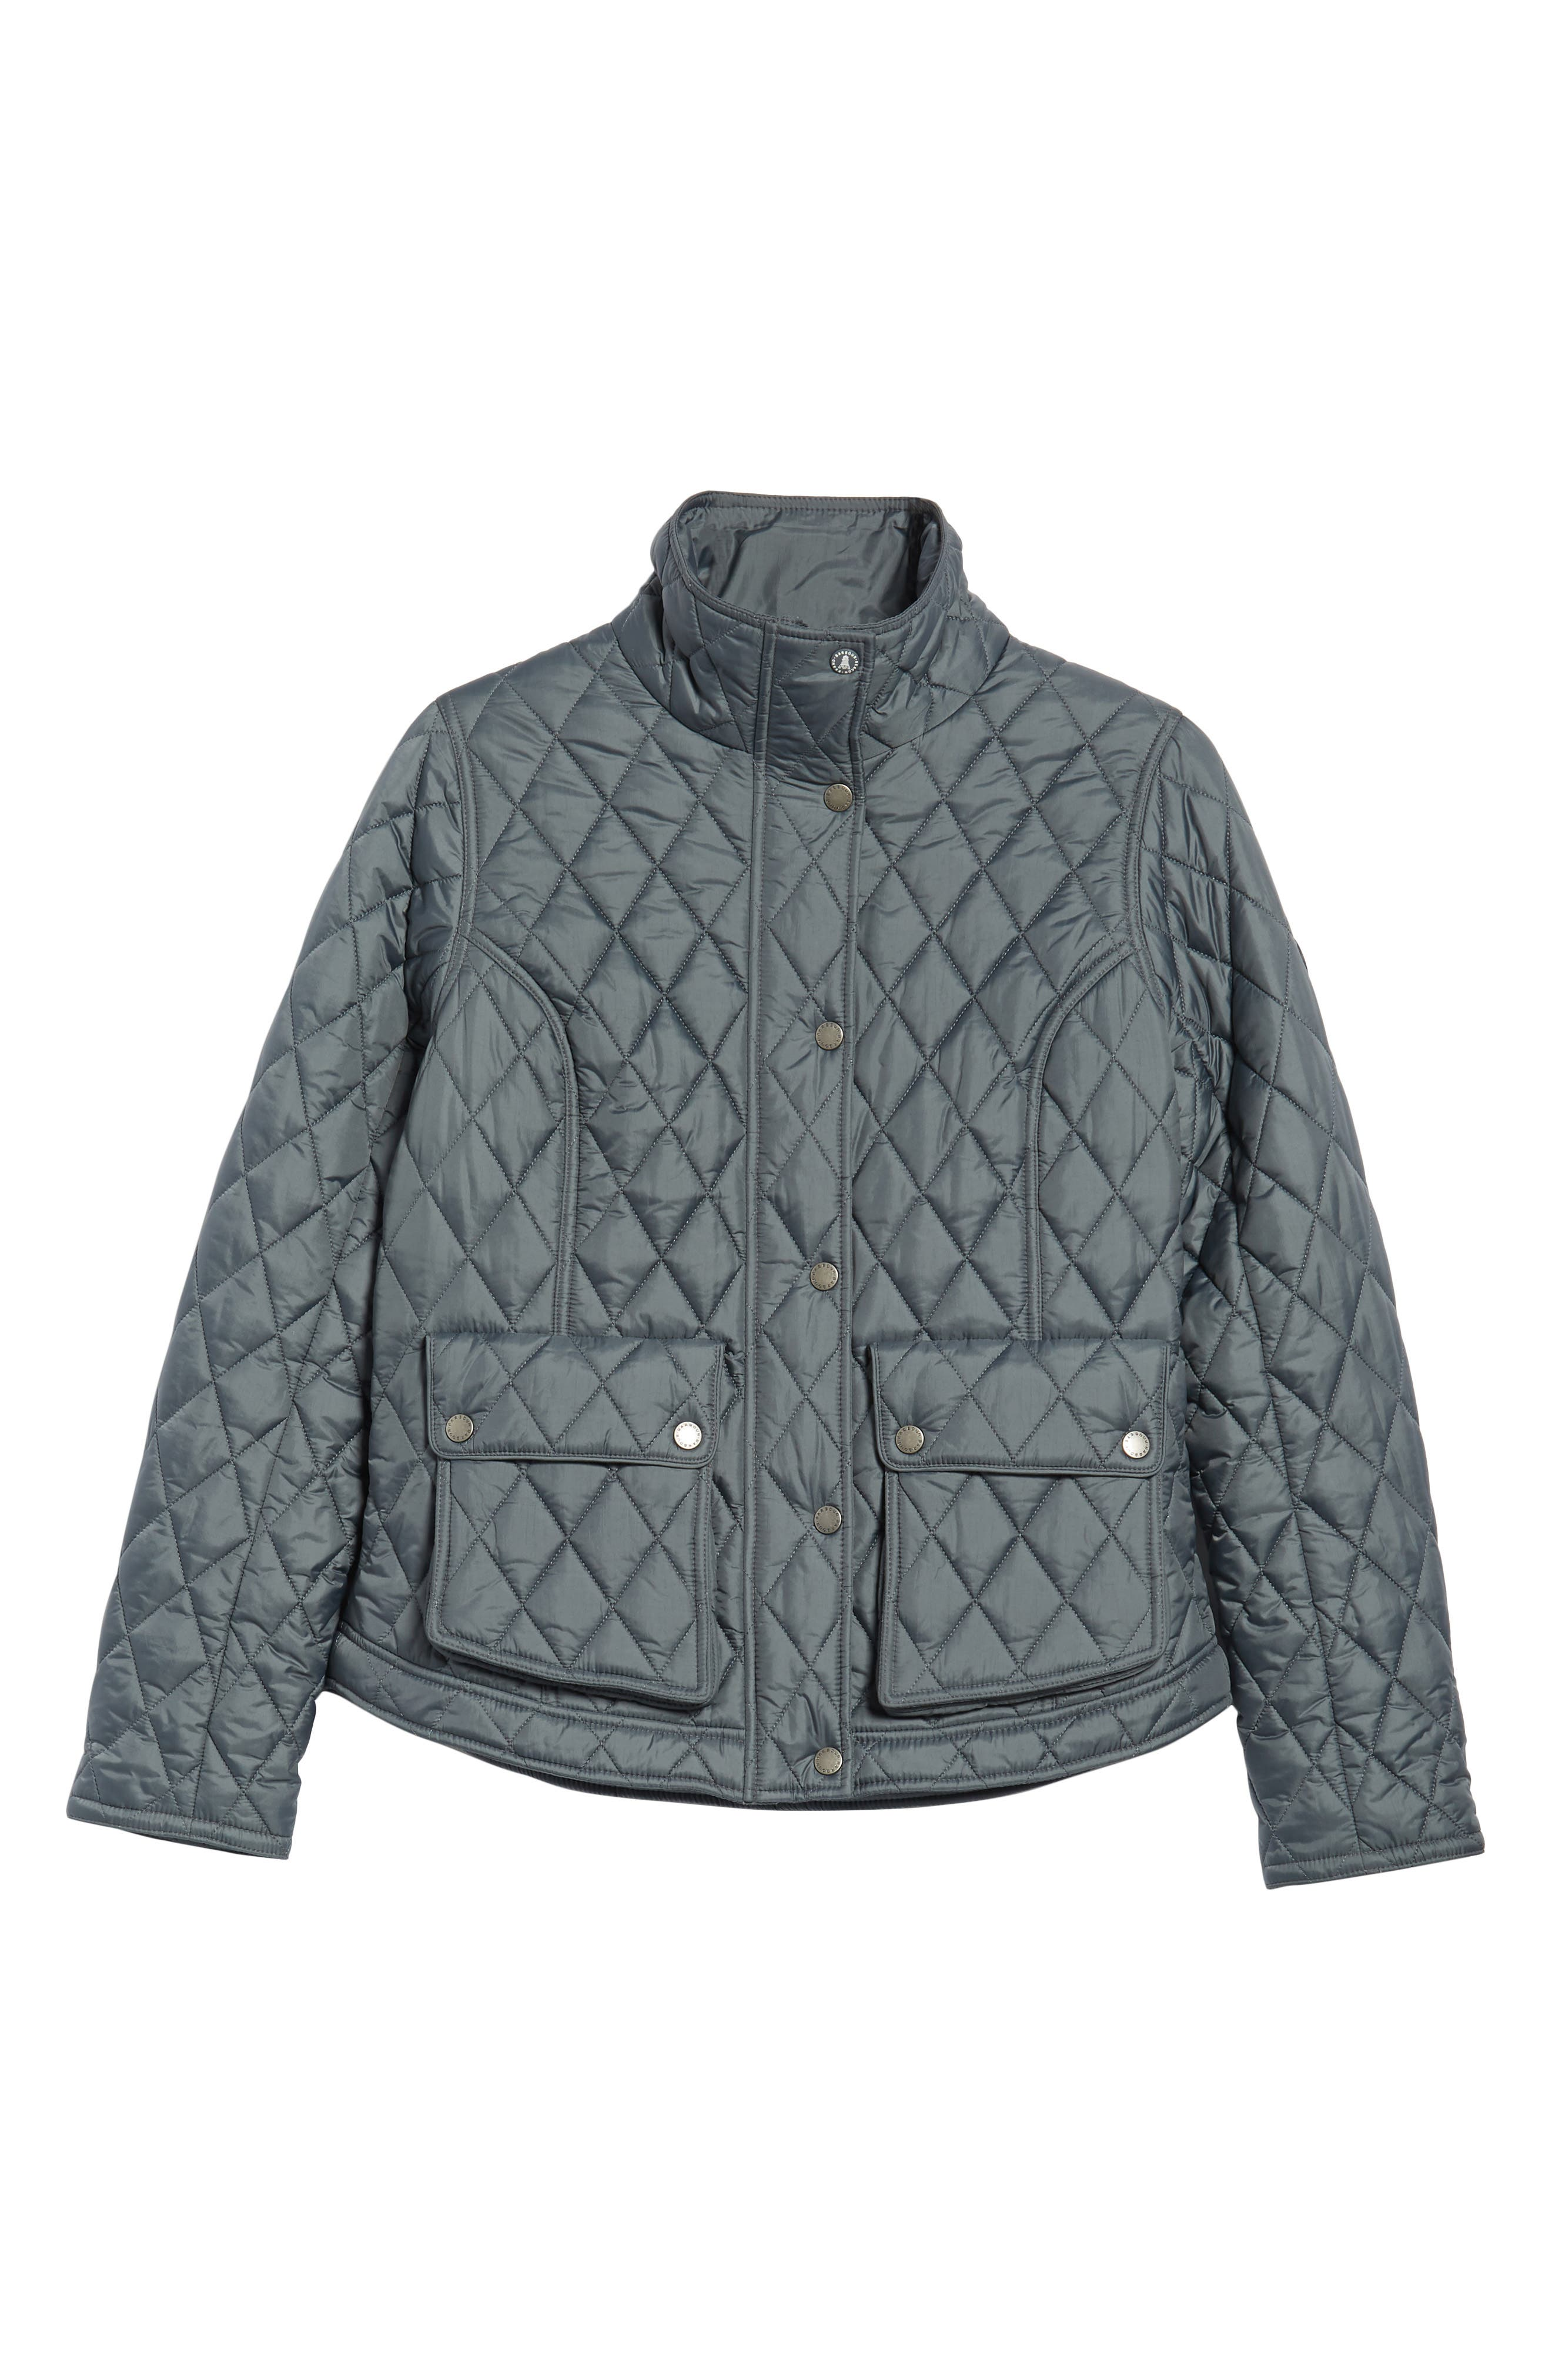 Fairway Quilted Jacket,                             Alternate thumbnail 6, color,                             Washed Charcoal